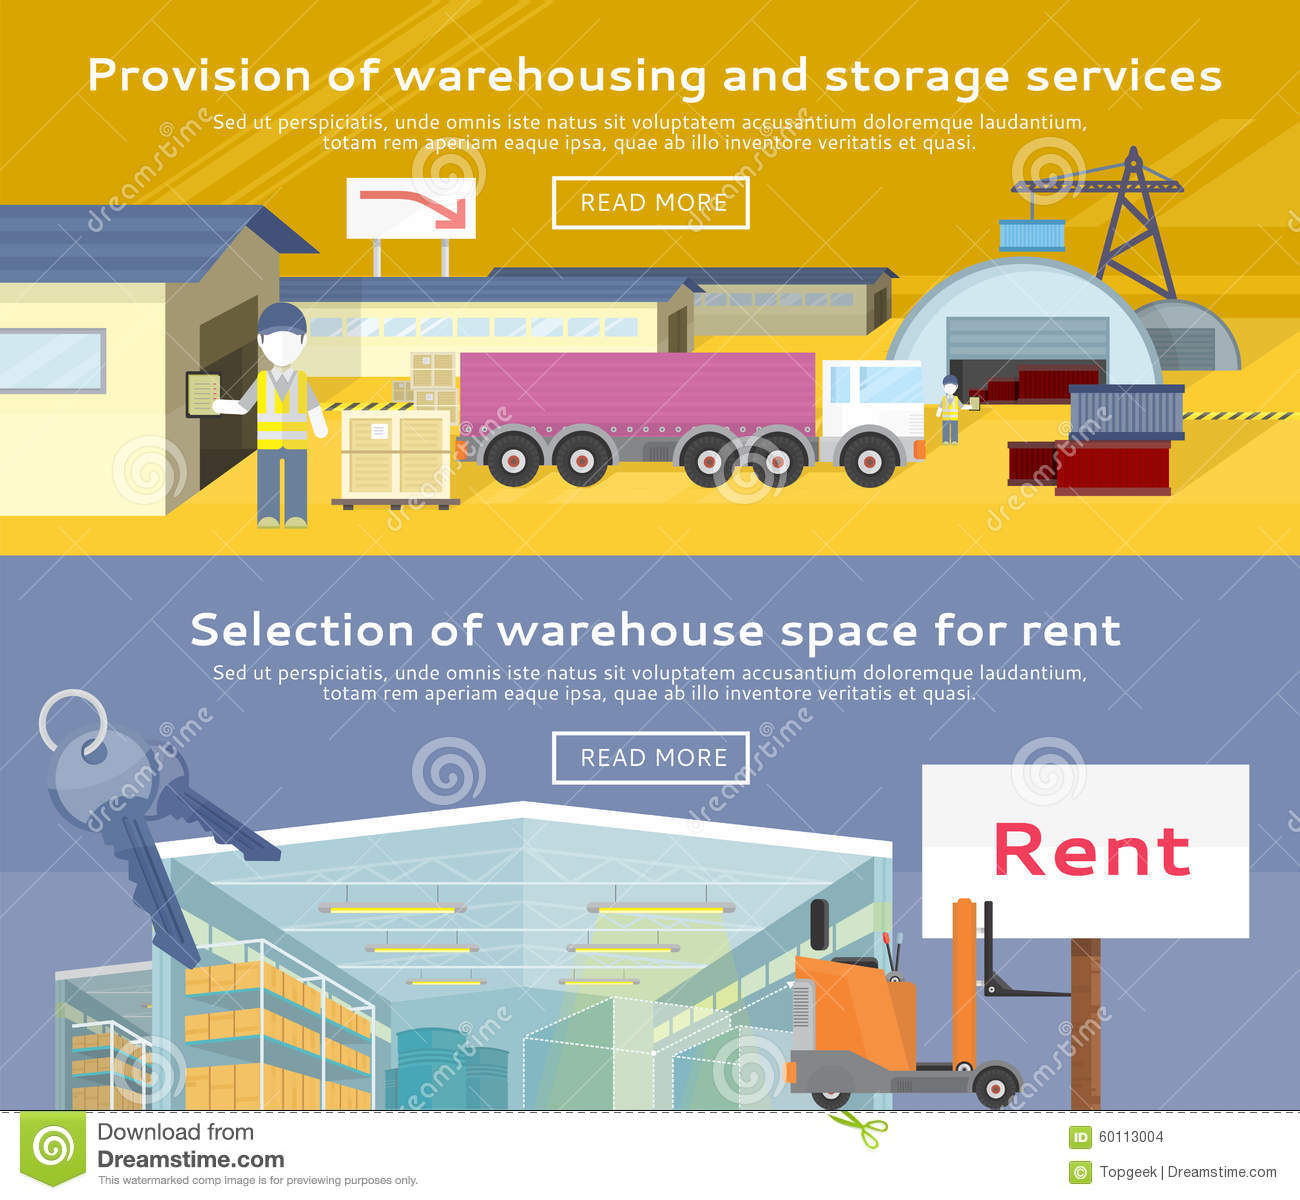 Storekeeper cartoons illustrations vector stock images 74 pictures to download from - Small storage spaces for rent model ...